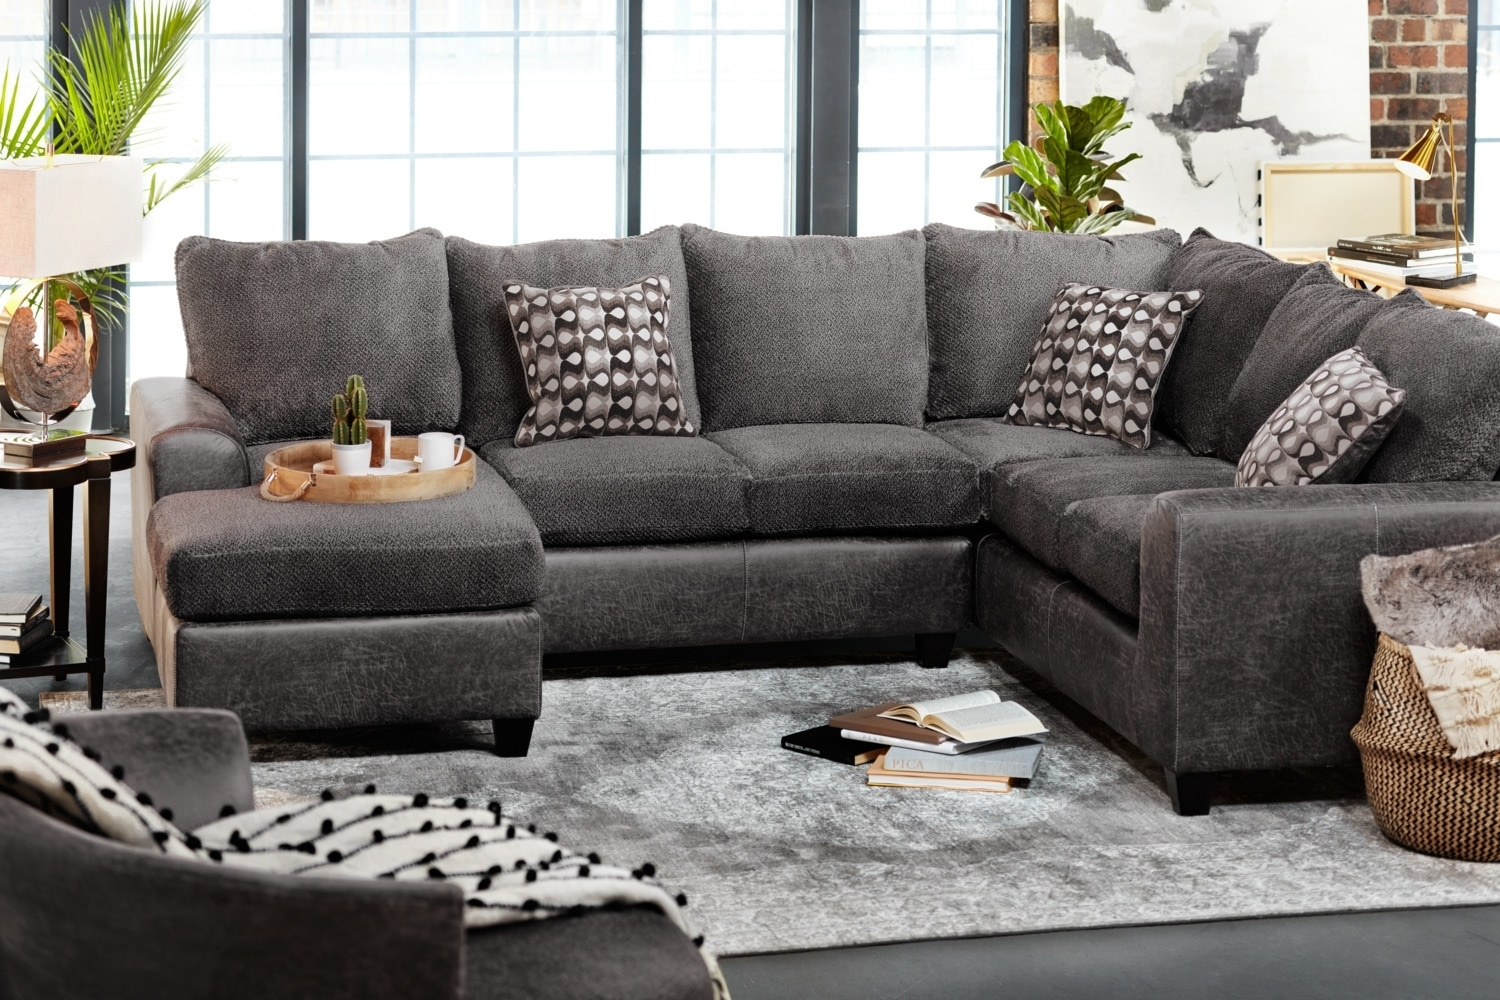 3 Piece Sectional - Locsbyhelenelorasa pertaining to Delano Smoke 3 Piece Sectionals (Image 1 of 30)